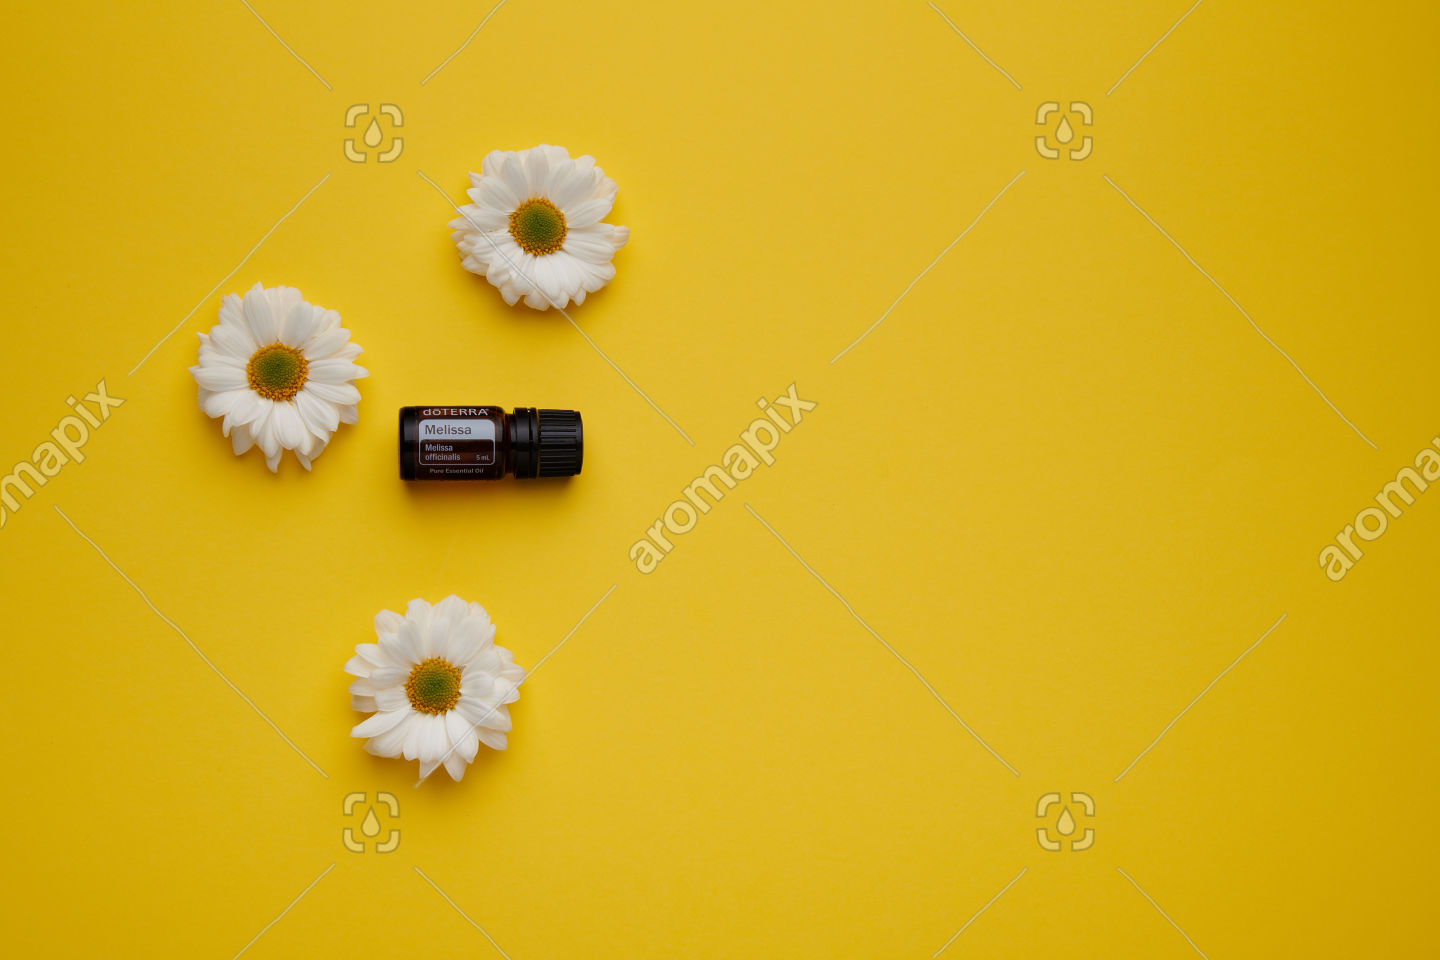 doTERRA Melissa with flowers on yellow